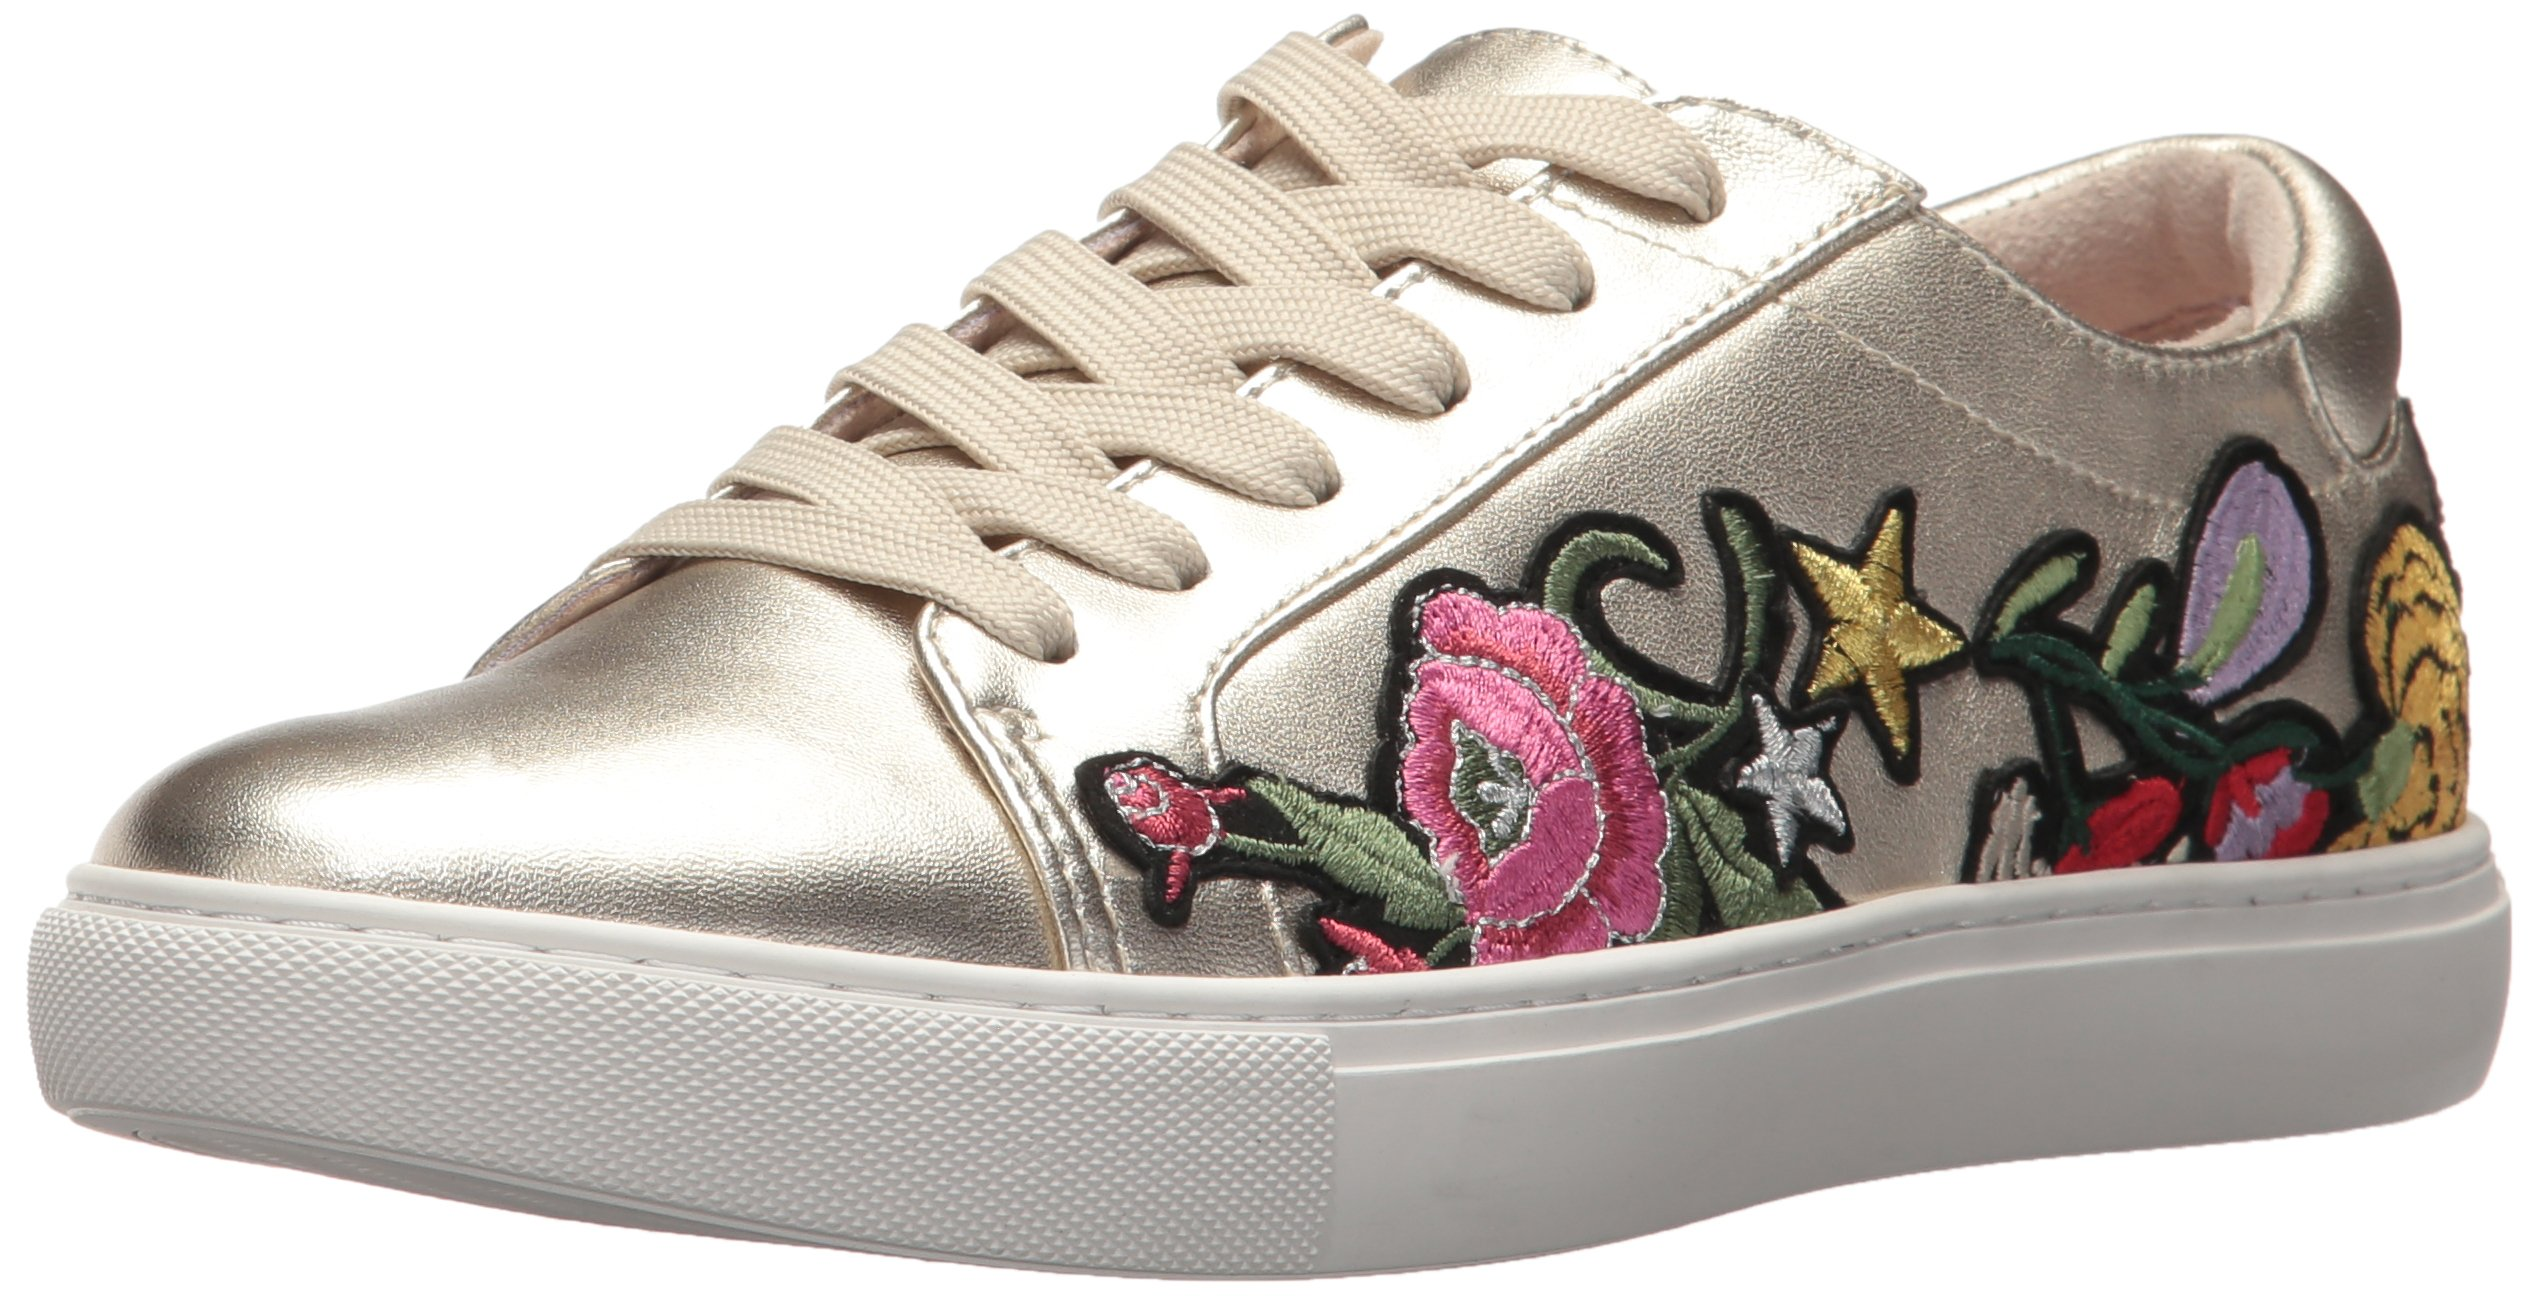 Kenneth Cole New York Women's Kam 10 Low Top Lace up Embroidered Sneaker, Light Gold, 7.5 Medium US